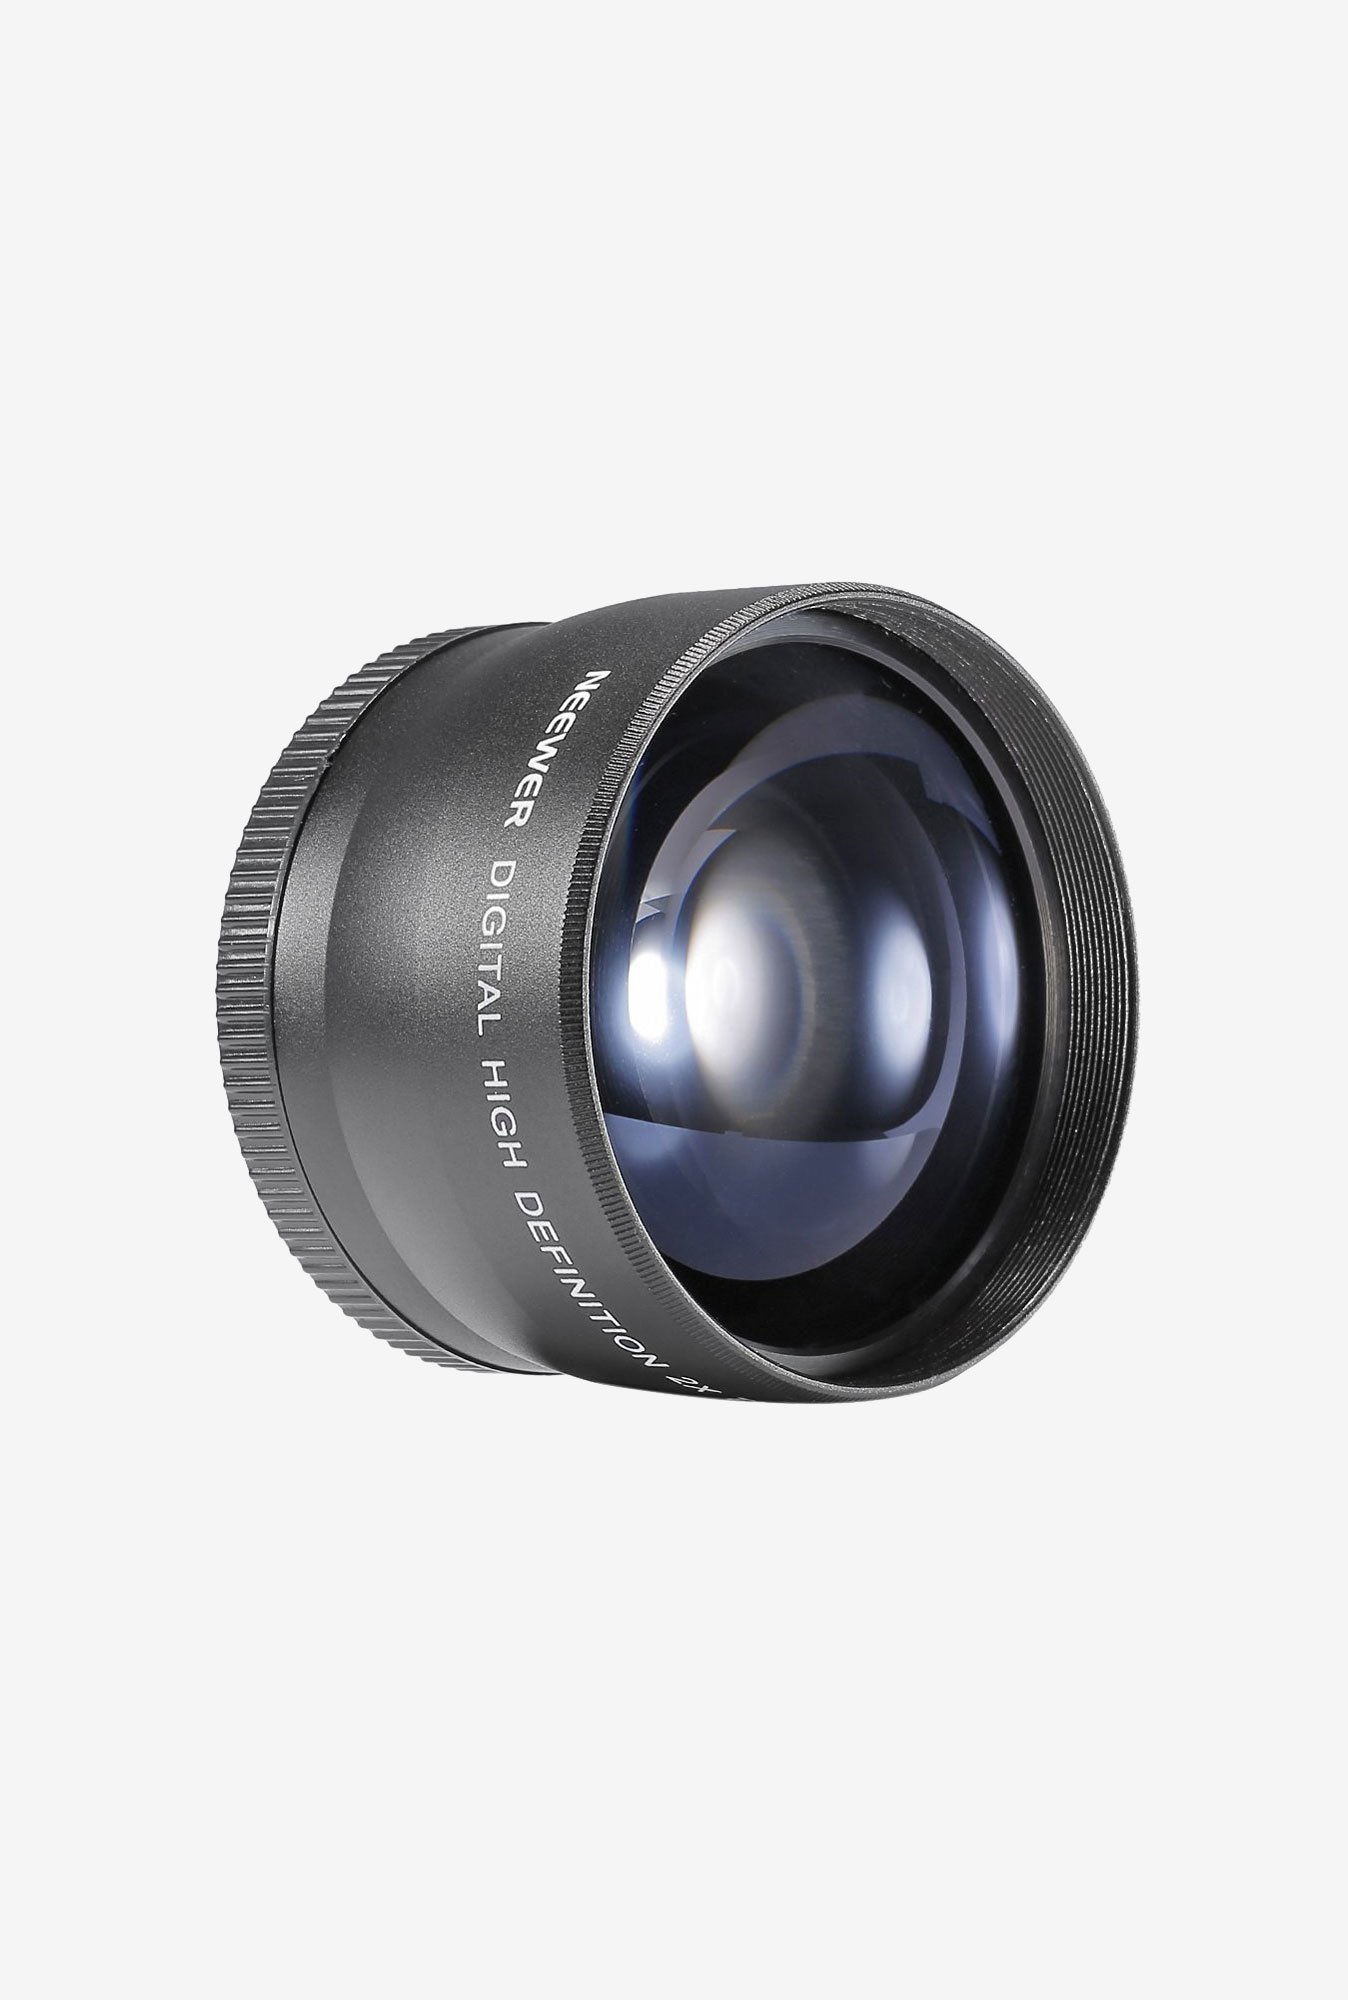 Neewer 58mm 2X Telephoto Lens With 58mm Filter Thread